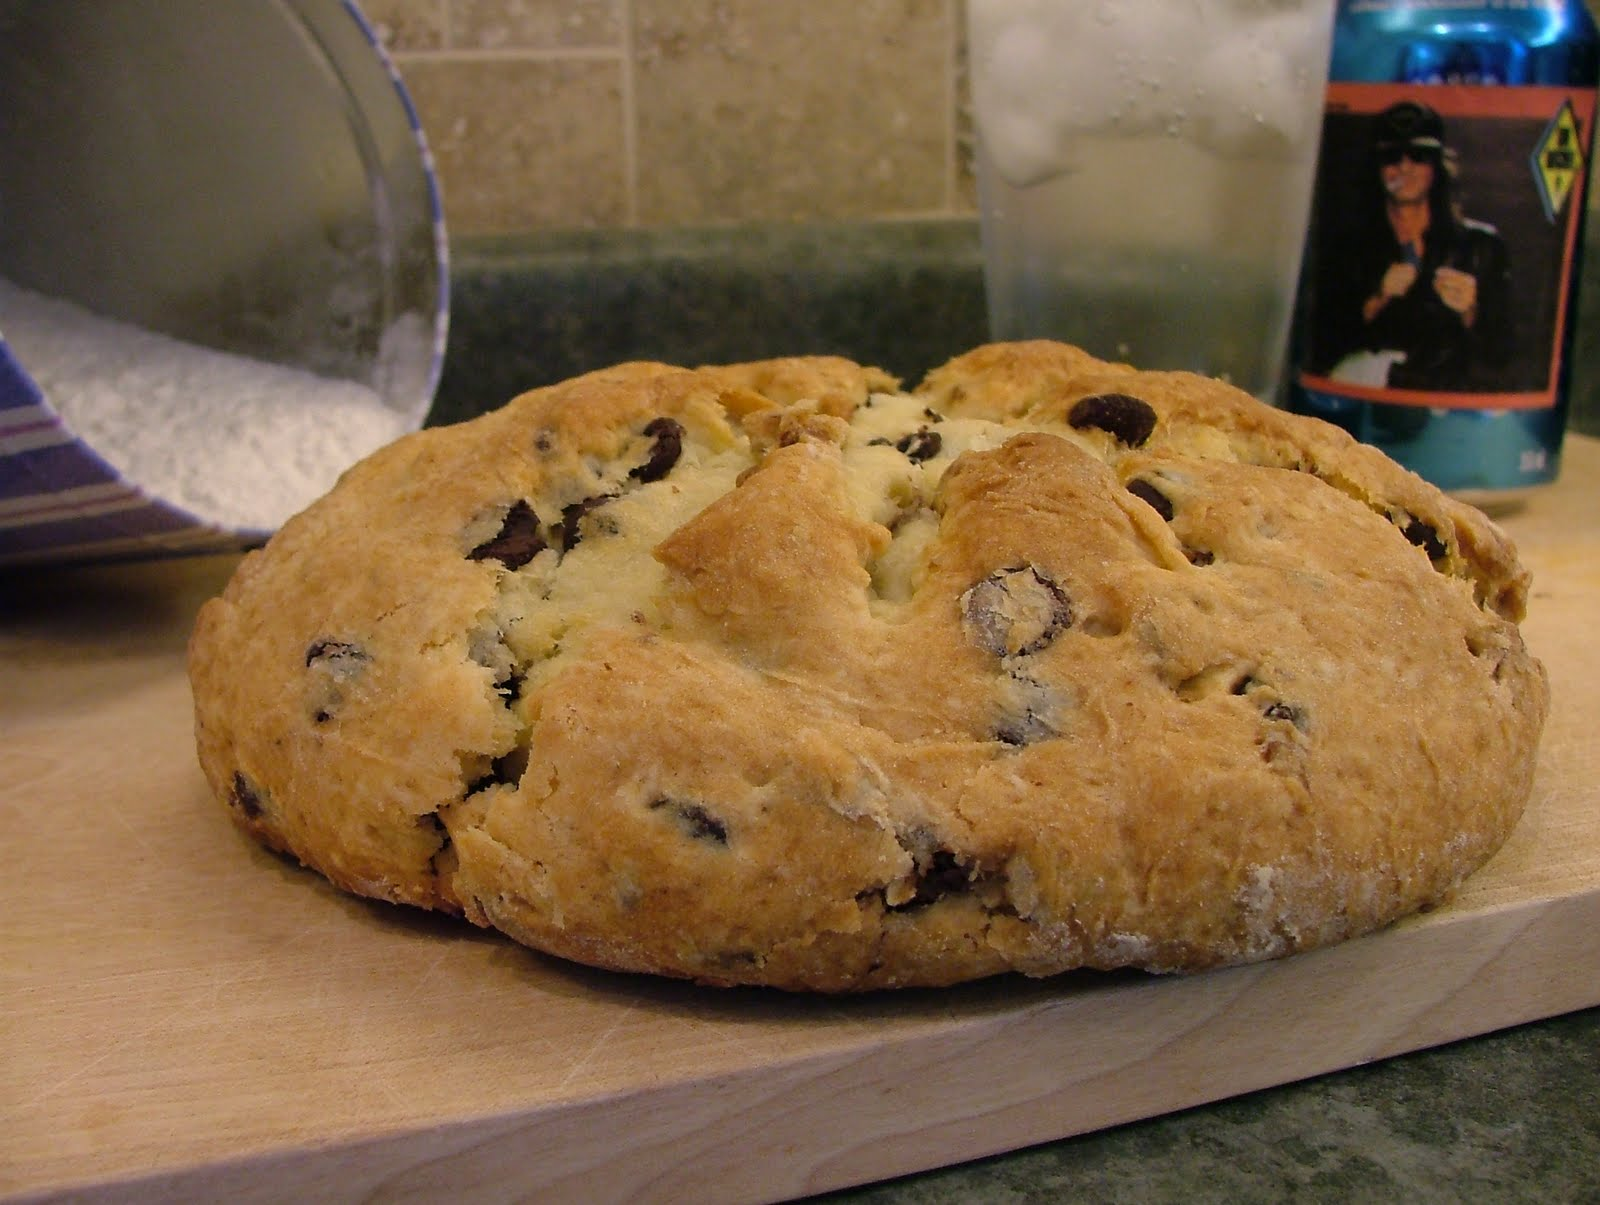 The Cook-a-Palooza Experience: Go For a Piece of Chocolate Soda Bread